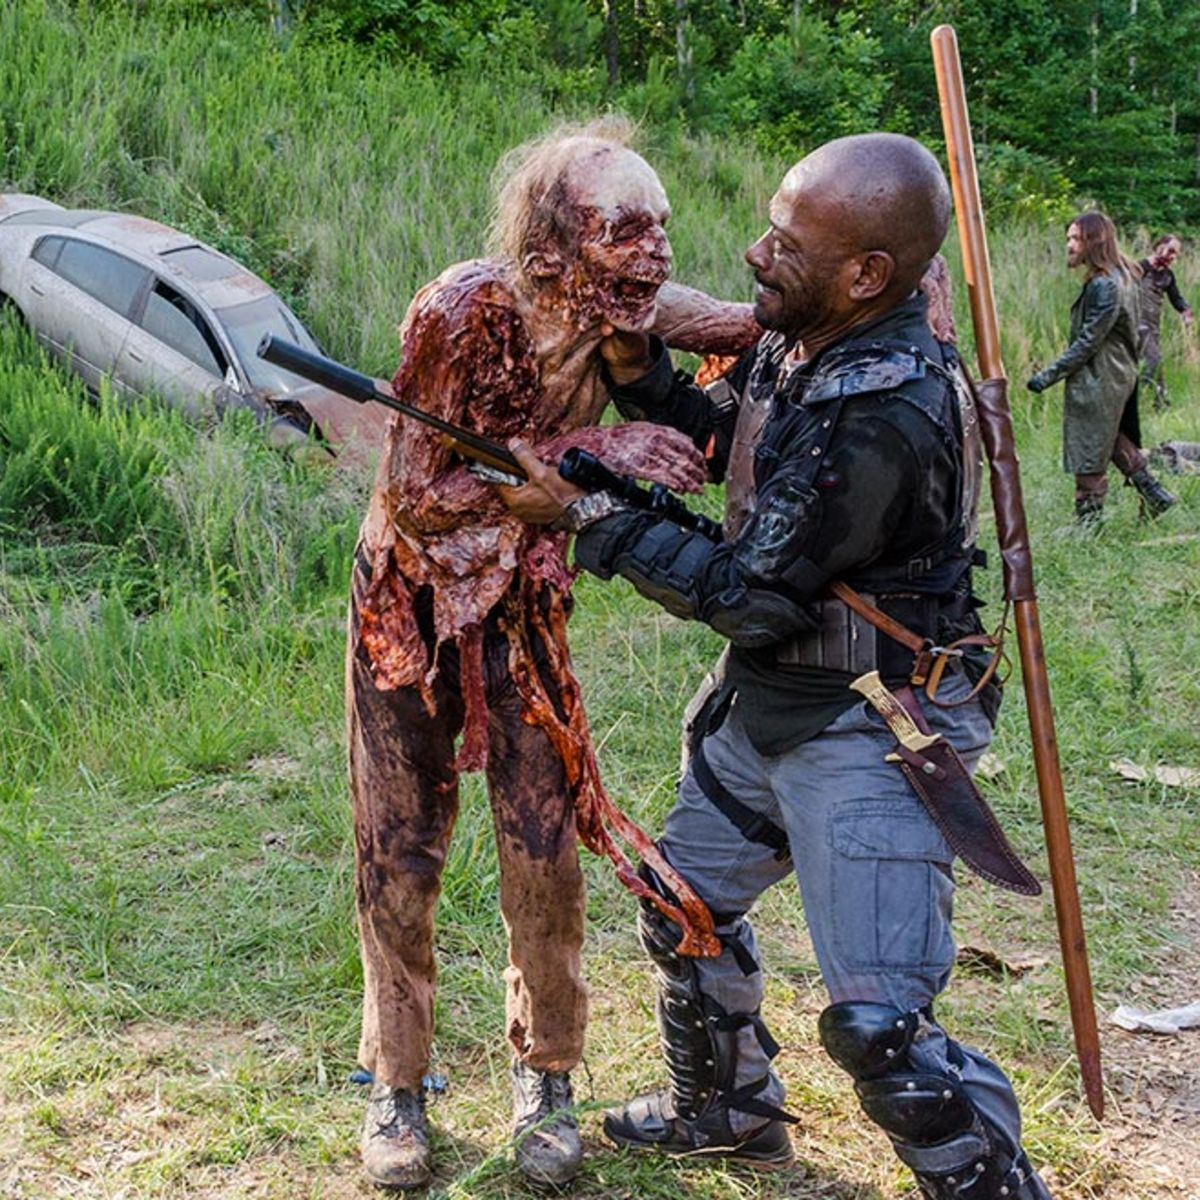 the-walking-dead-episode-803-morgan-james-3-935.jpg